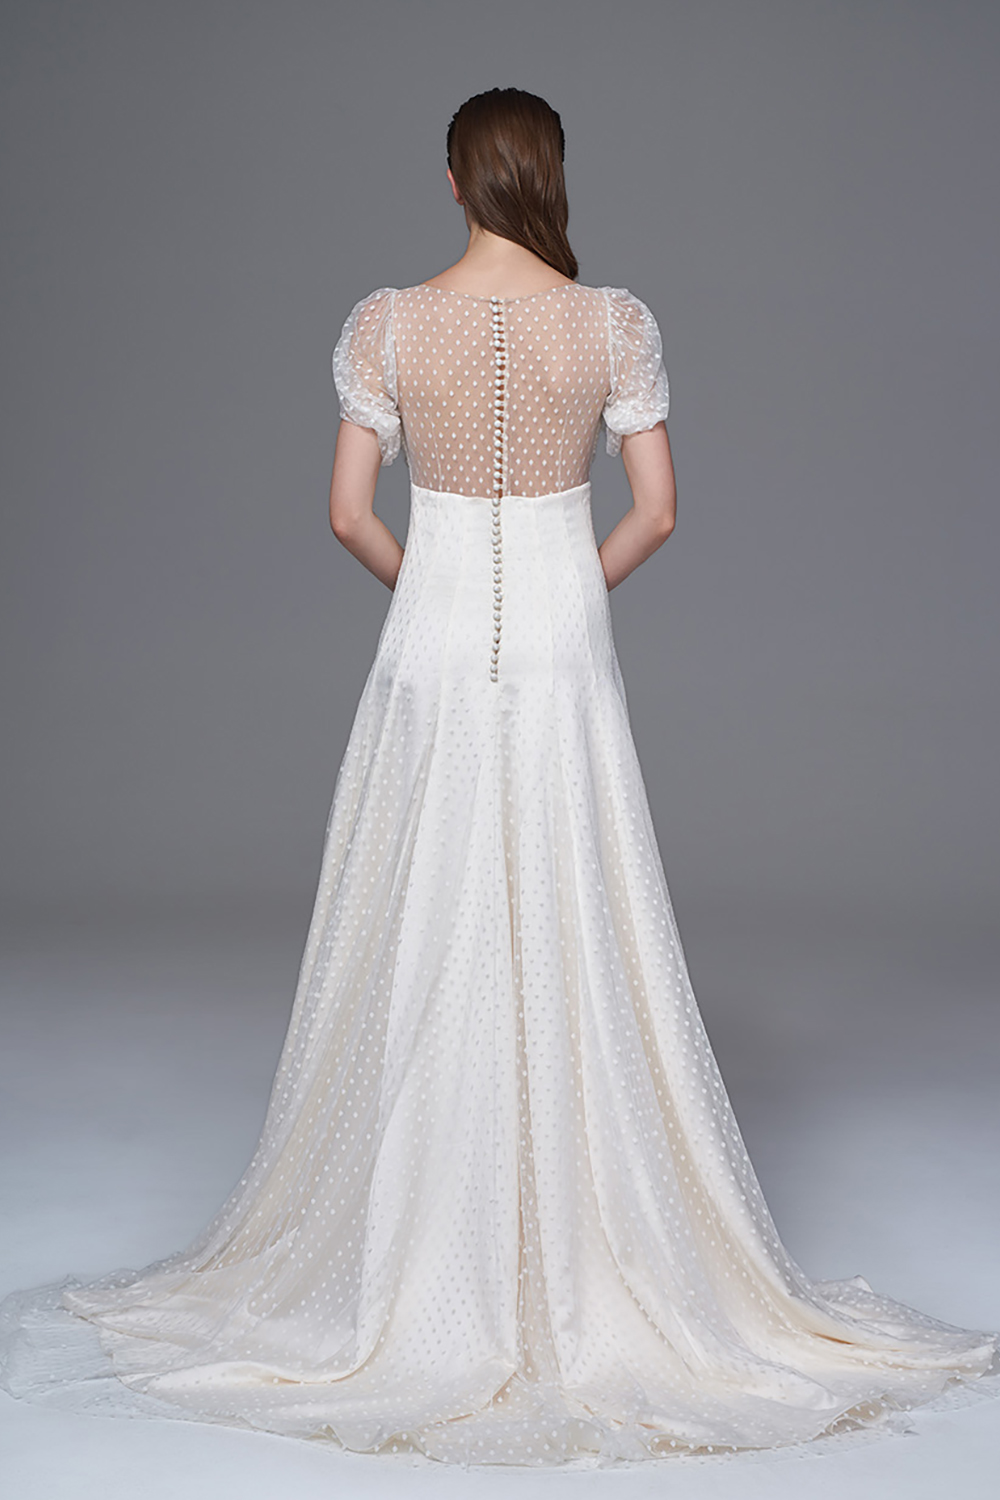 THE KATE MOSS SPOTTY TULLE DRESS WITH SOFT SLEEVES, BUTTON DETAILING AND SHEER BACK. BRIDAL WEDDING DRESS BY HALFPENNY LONDON